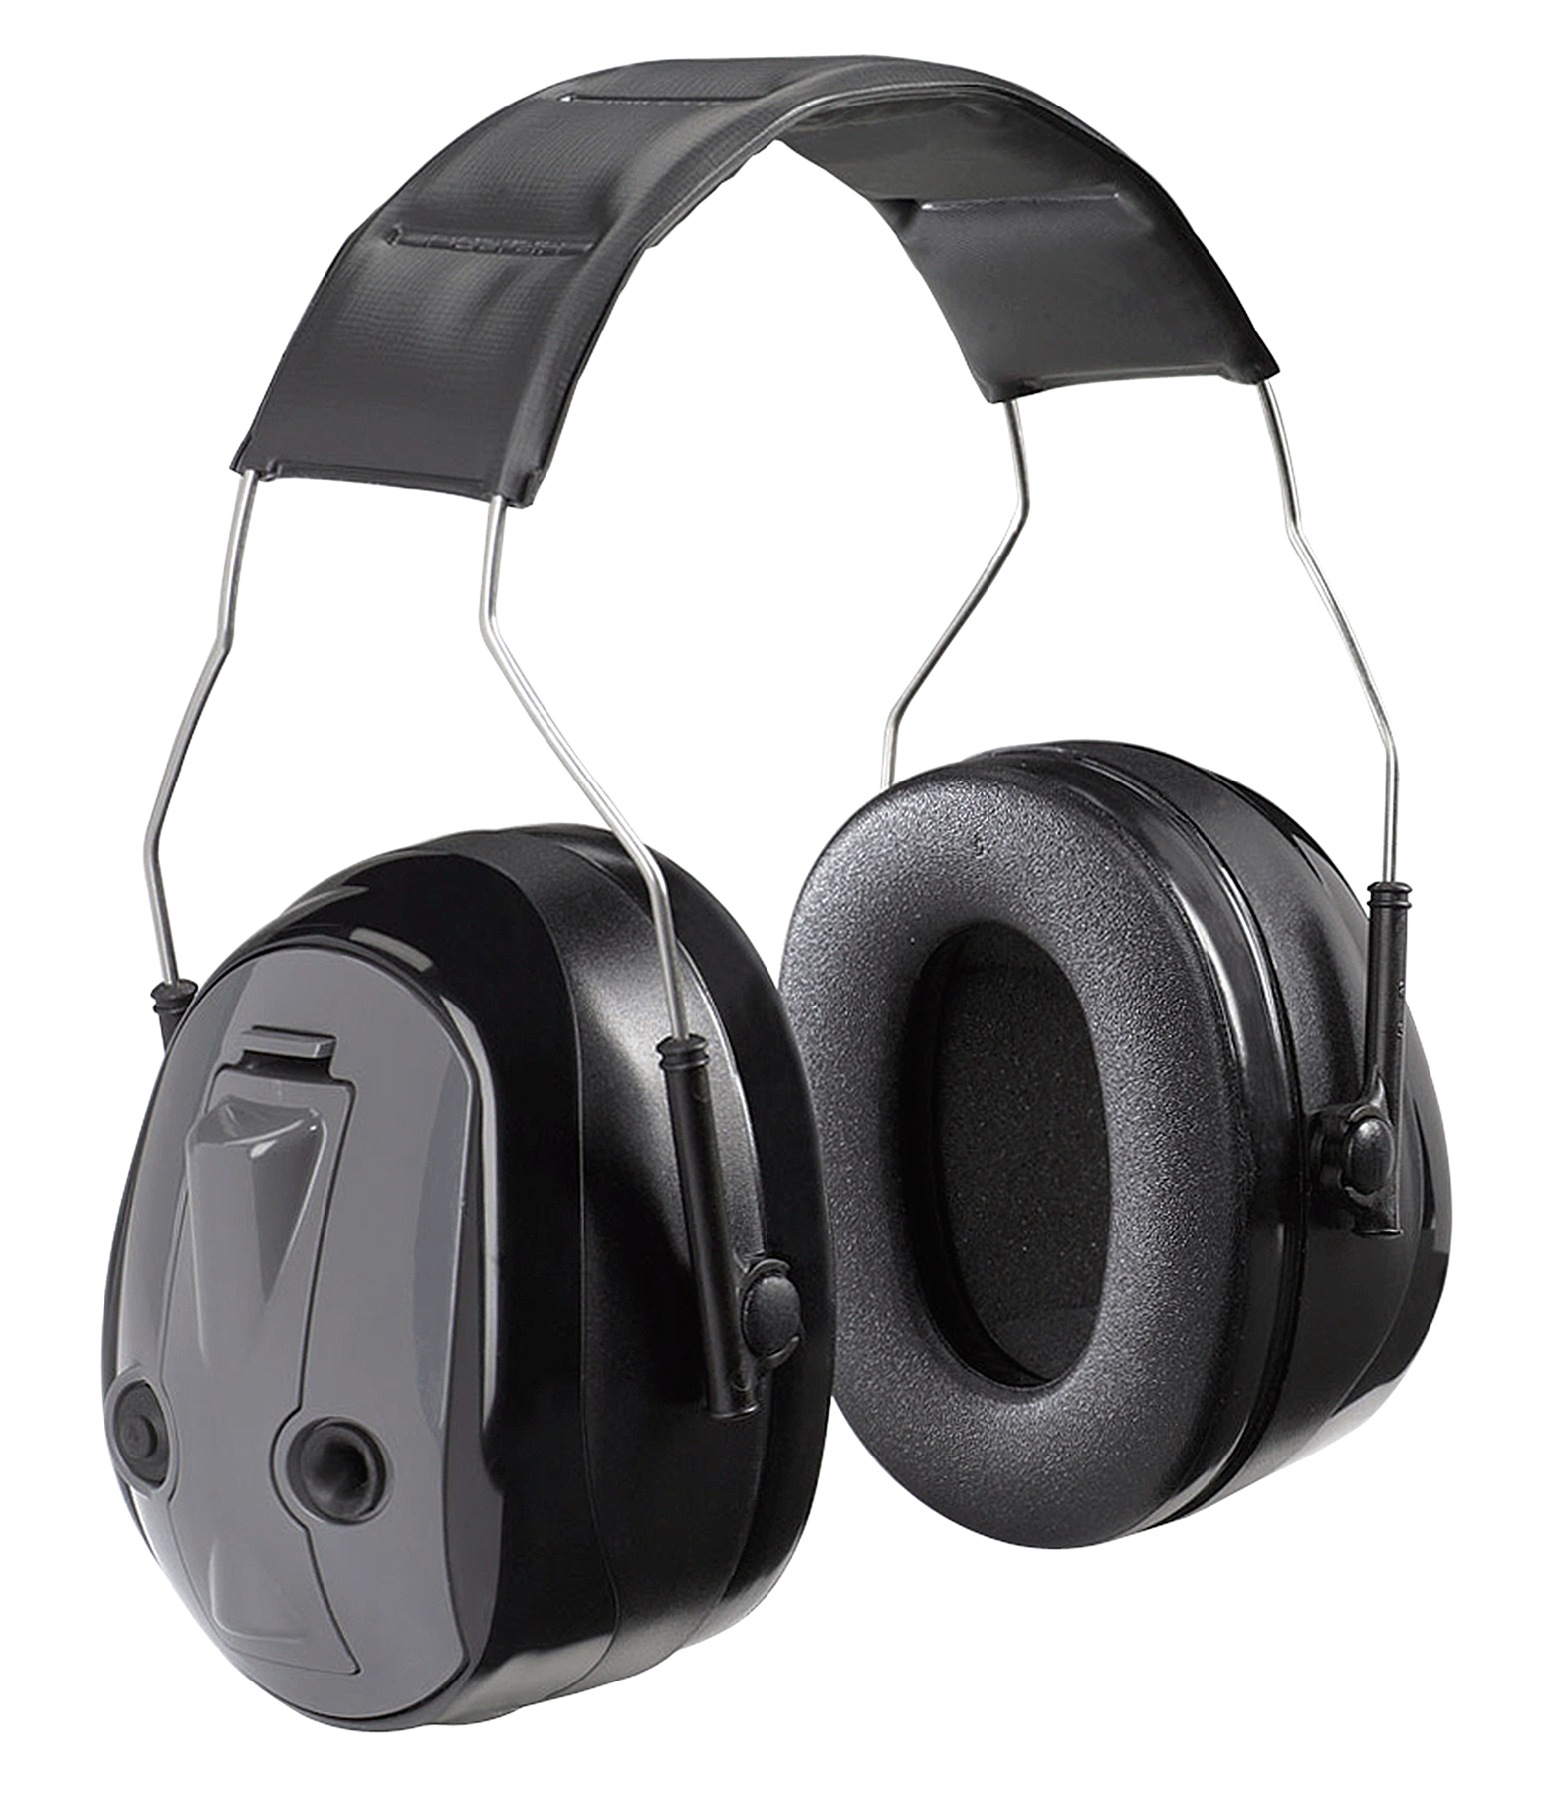 3M Peltor 97088 Tactical Earmuff Black/Gray